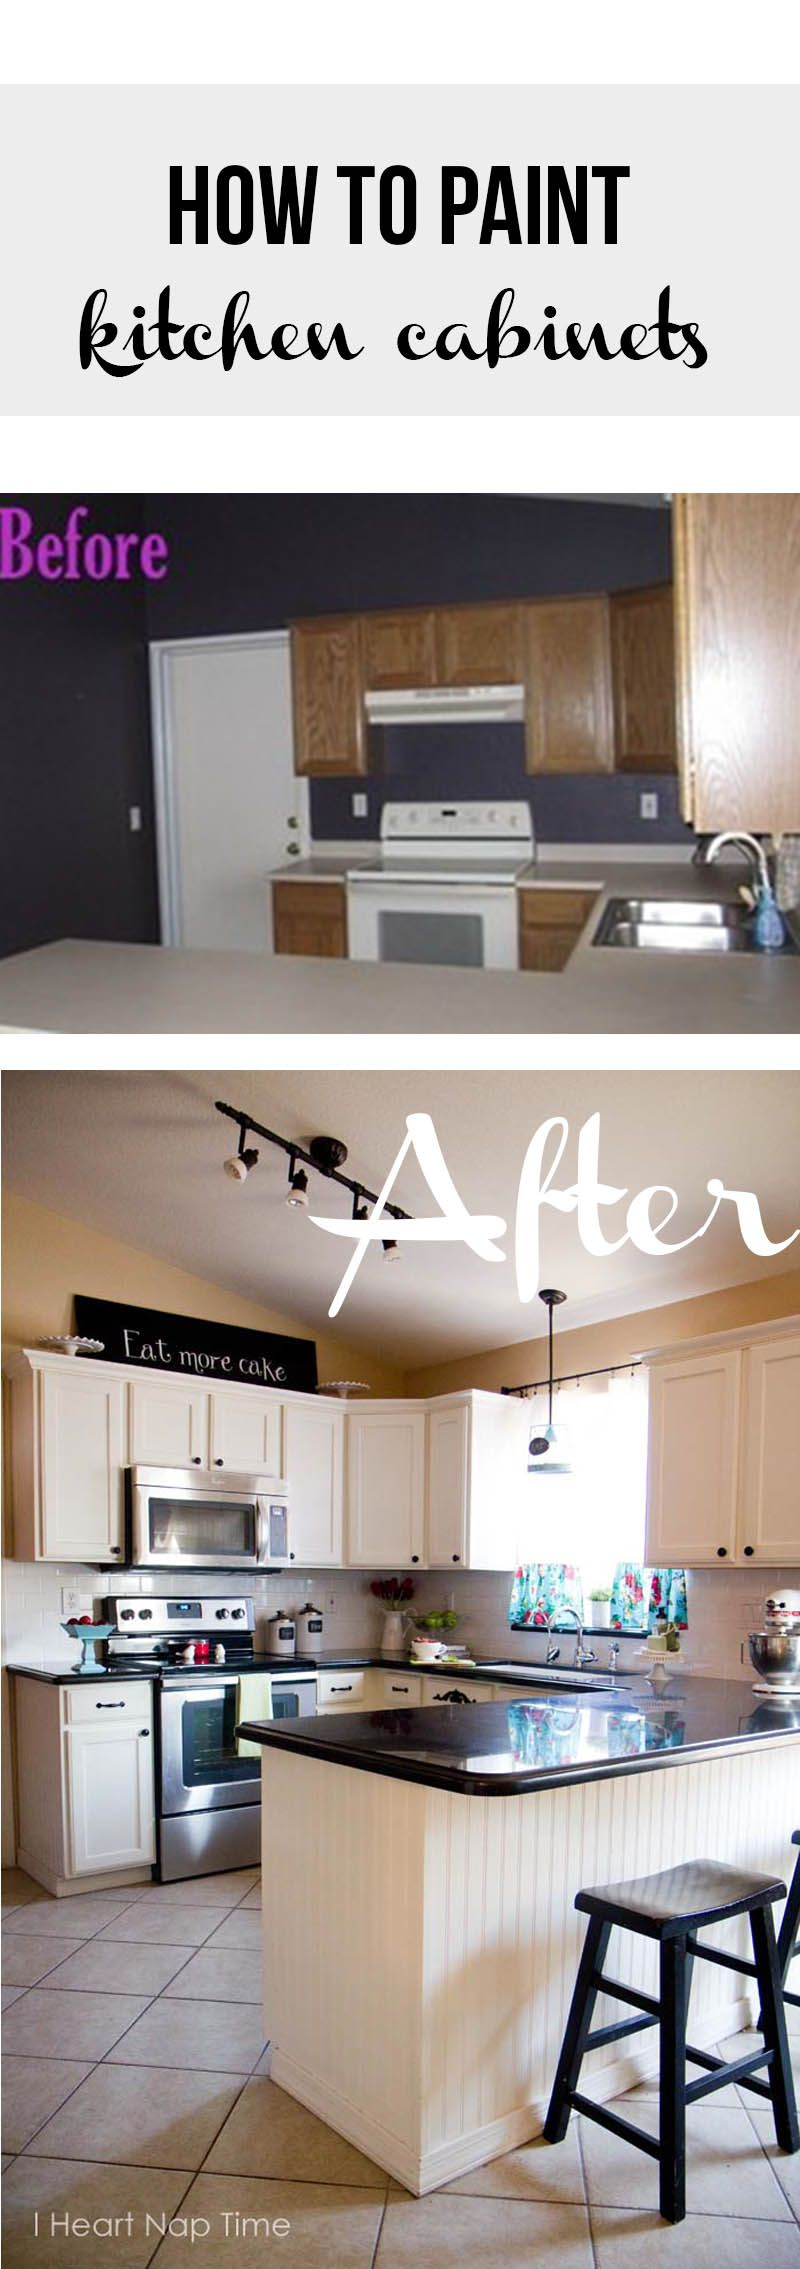 How To Paint Kitchen Cabinets White Diy Gifts For Any Occasion